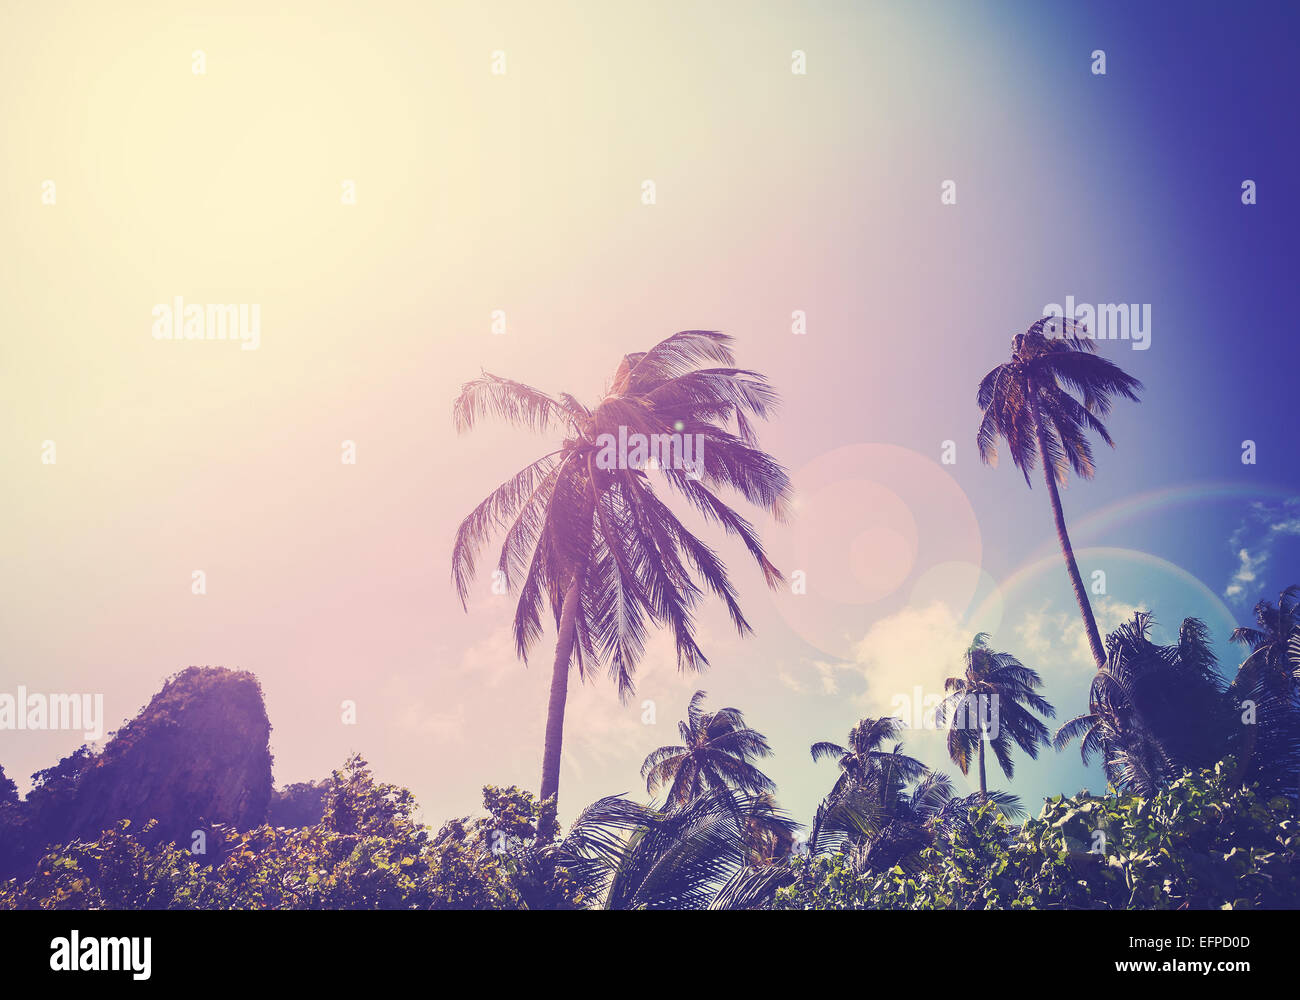 Vintage filtered picture of faded palms with flare effect. - Stock Image